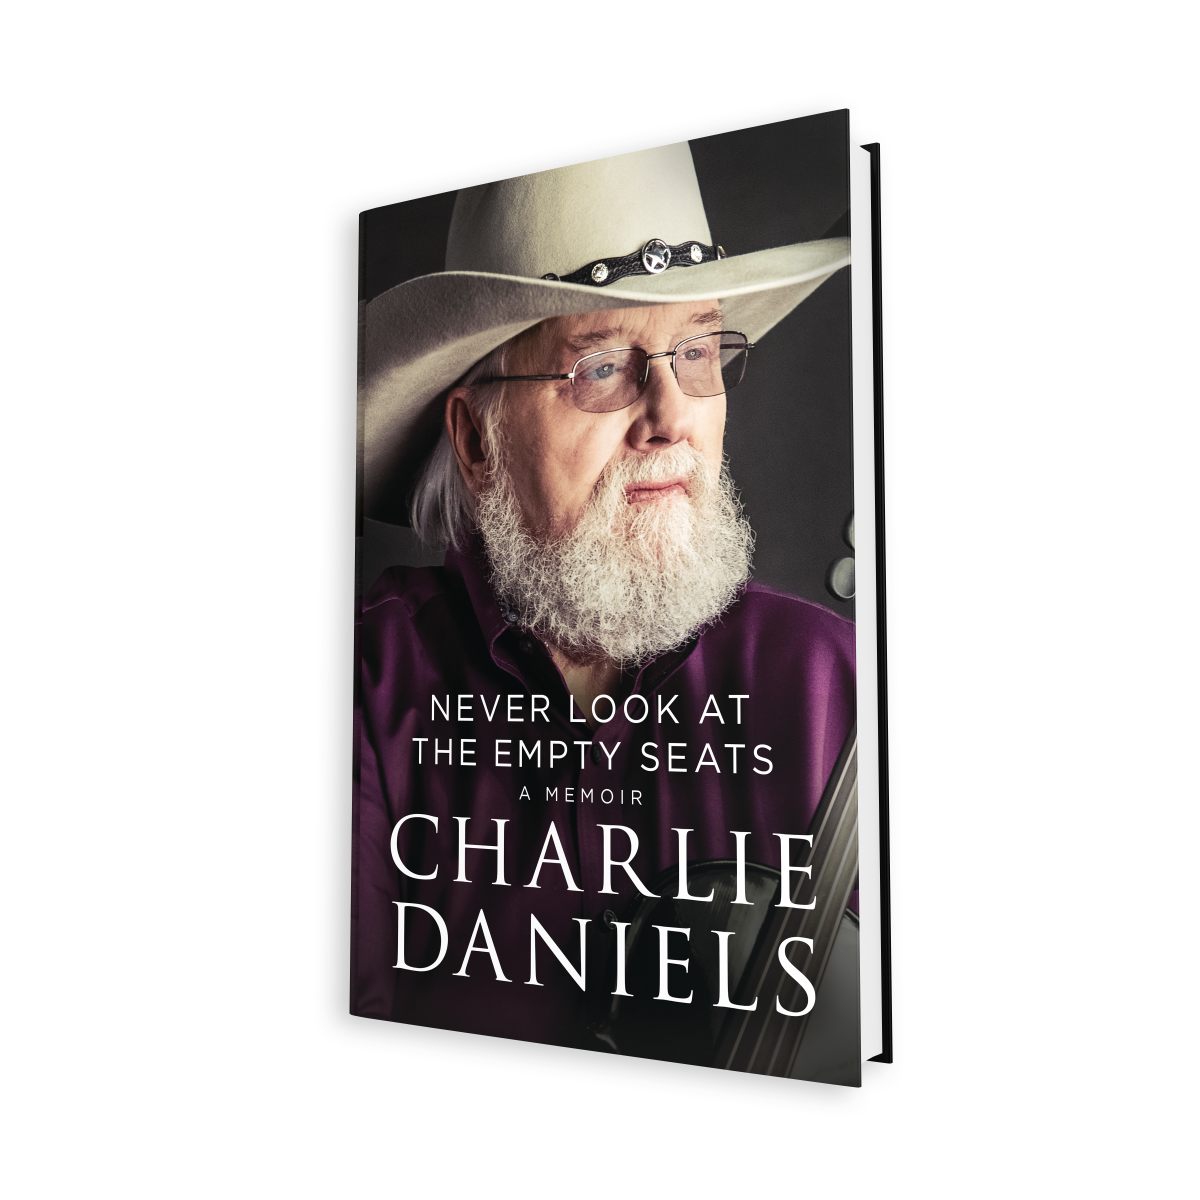 charlie daniels essay America, i believe in you was a country album released by the charlie daniels band on april 12, 1993 charlie daniels – guitar, vocals, liner notes.